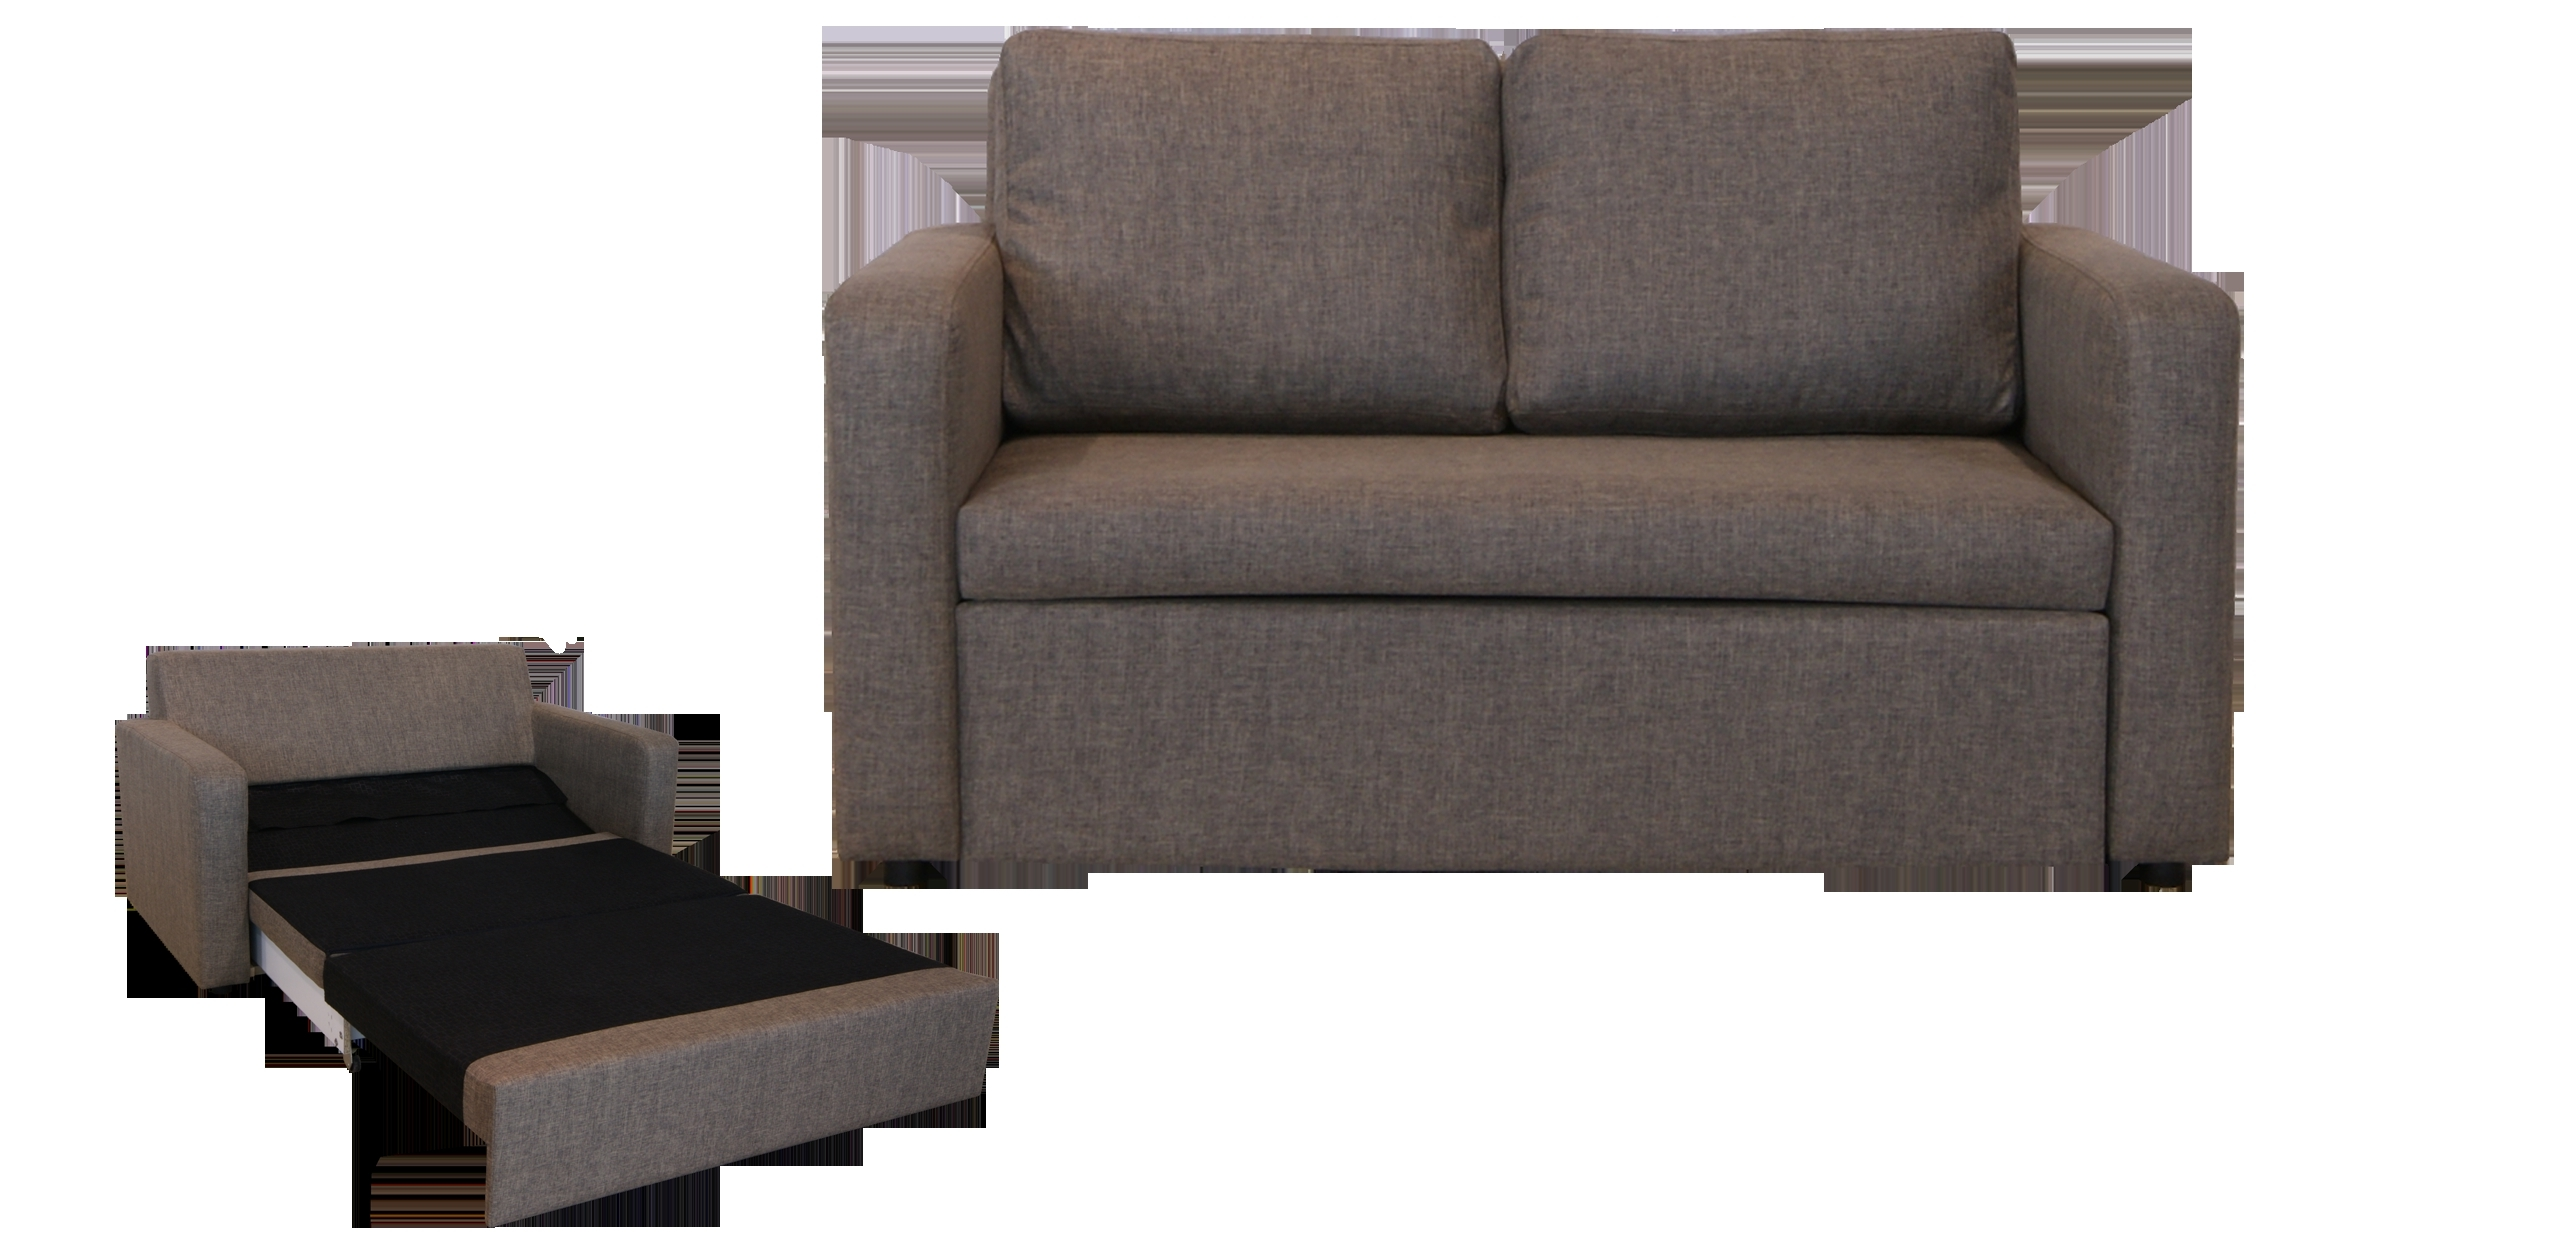 Small 2 Seater Sofas In Trendy Small 2 Seater Bedroom Sofa • Sofa Bed (View 9 of 20)